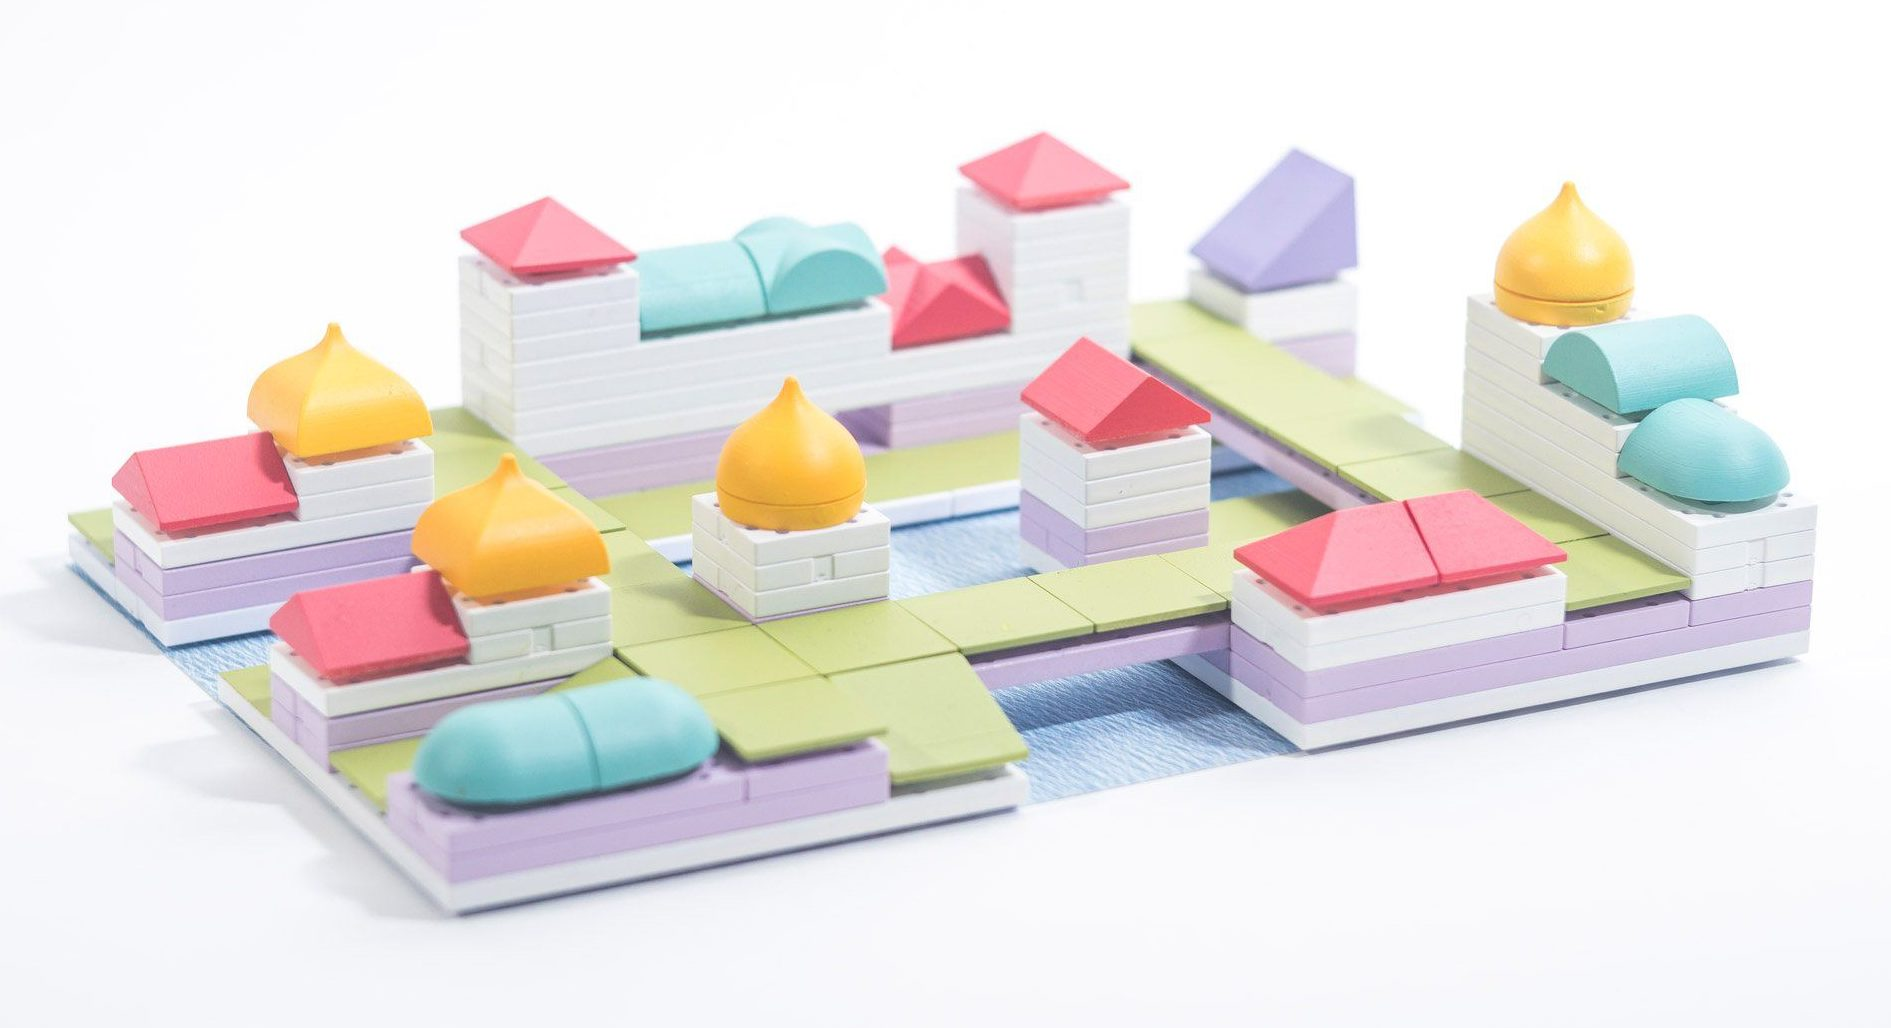 Architecture Design Kit arckit's new modeling sets make it easy to build professional